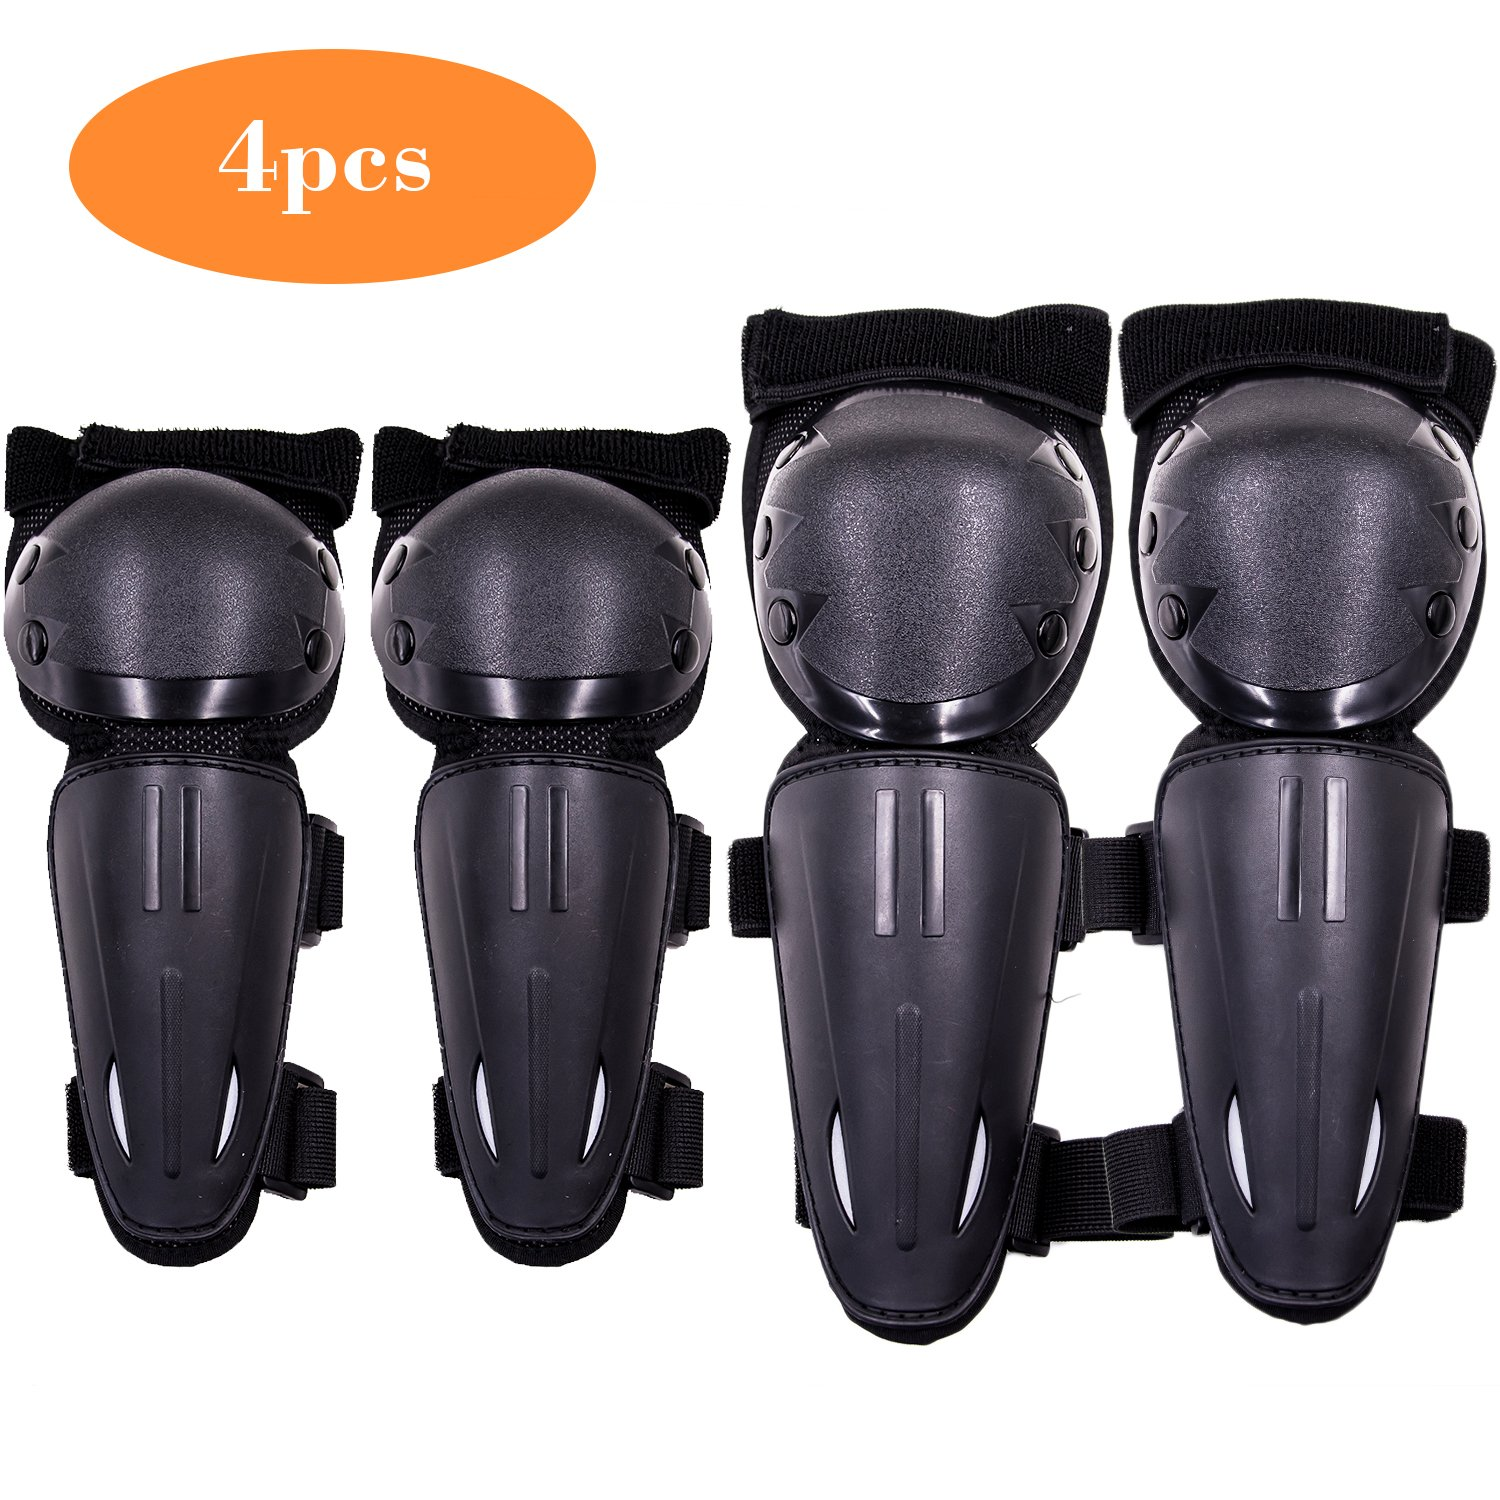 Webetop 4pcs Kids Knee Pads Elbow Guards Protective Gear Set for Multi Sports Skateboarding Inline Roller Skating Cycling Bikeing BMX Bicycle Scooter-Fits 6-13 Age Children Web3079-04